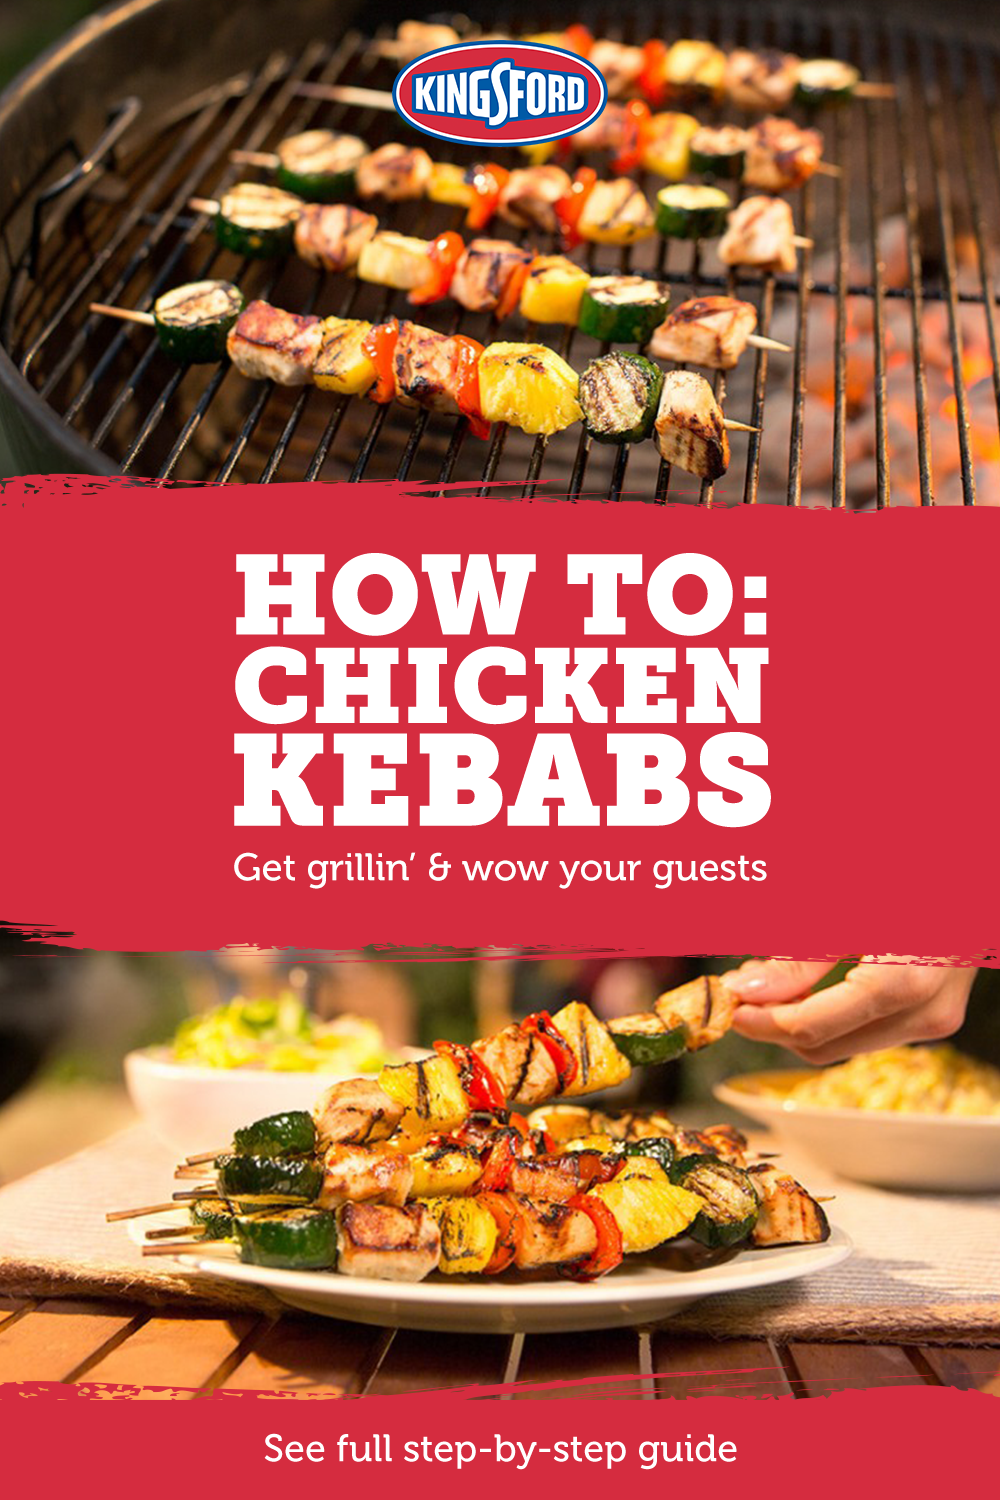 How To: Chicken Kebabs images